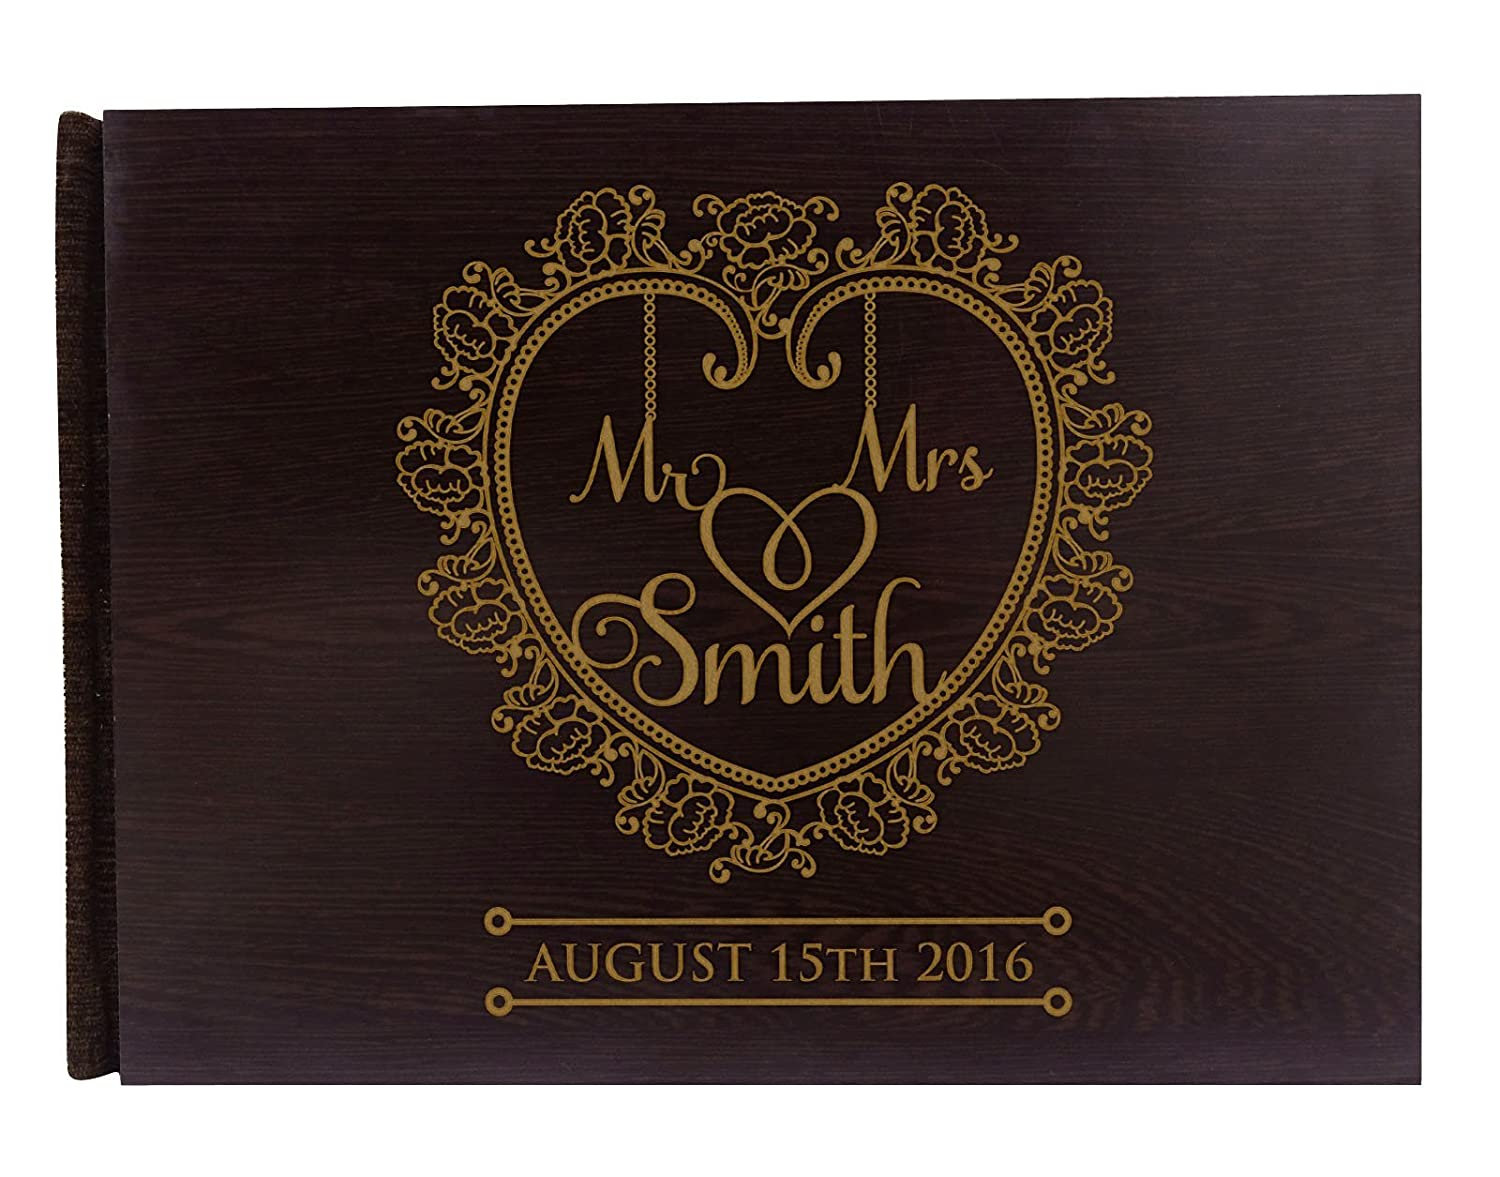 Personalized Mr & Mrs刻印木製結婚Guestbook Bride & Groom Advice Book素朴な結婚式ゲストブック – 50ページ Large - 9 x 12 Inches B01GZYQ4XQ  Large - 9 x 12 Inches